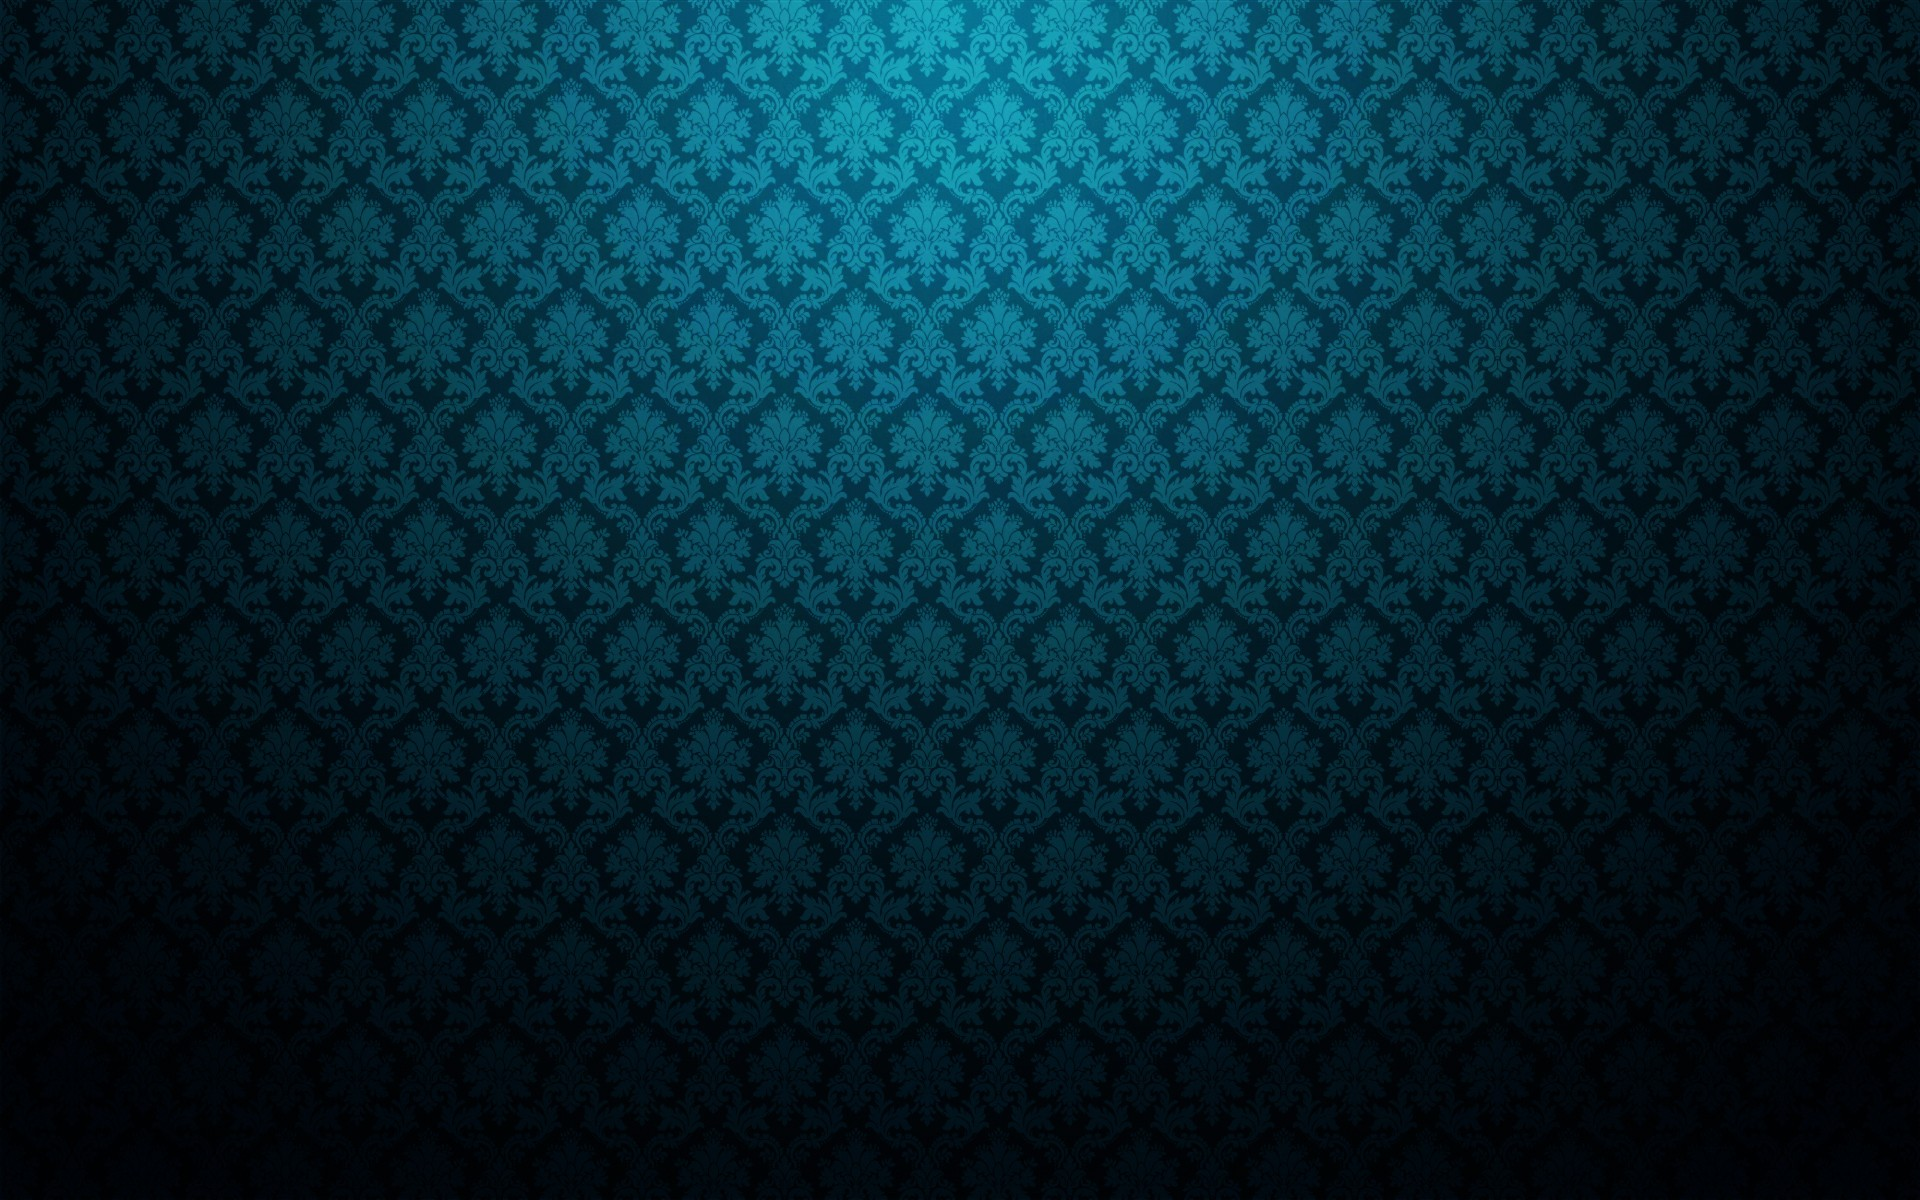 Abstract minimalistic pattern patterns damask wallpaper 1920x1200 1920x1200